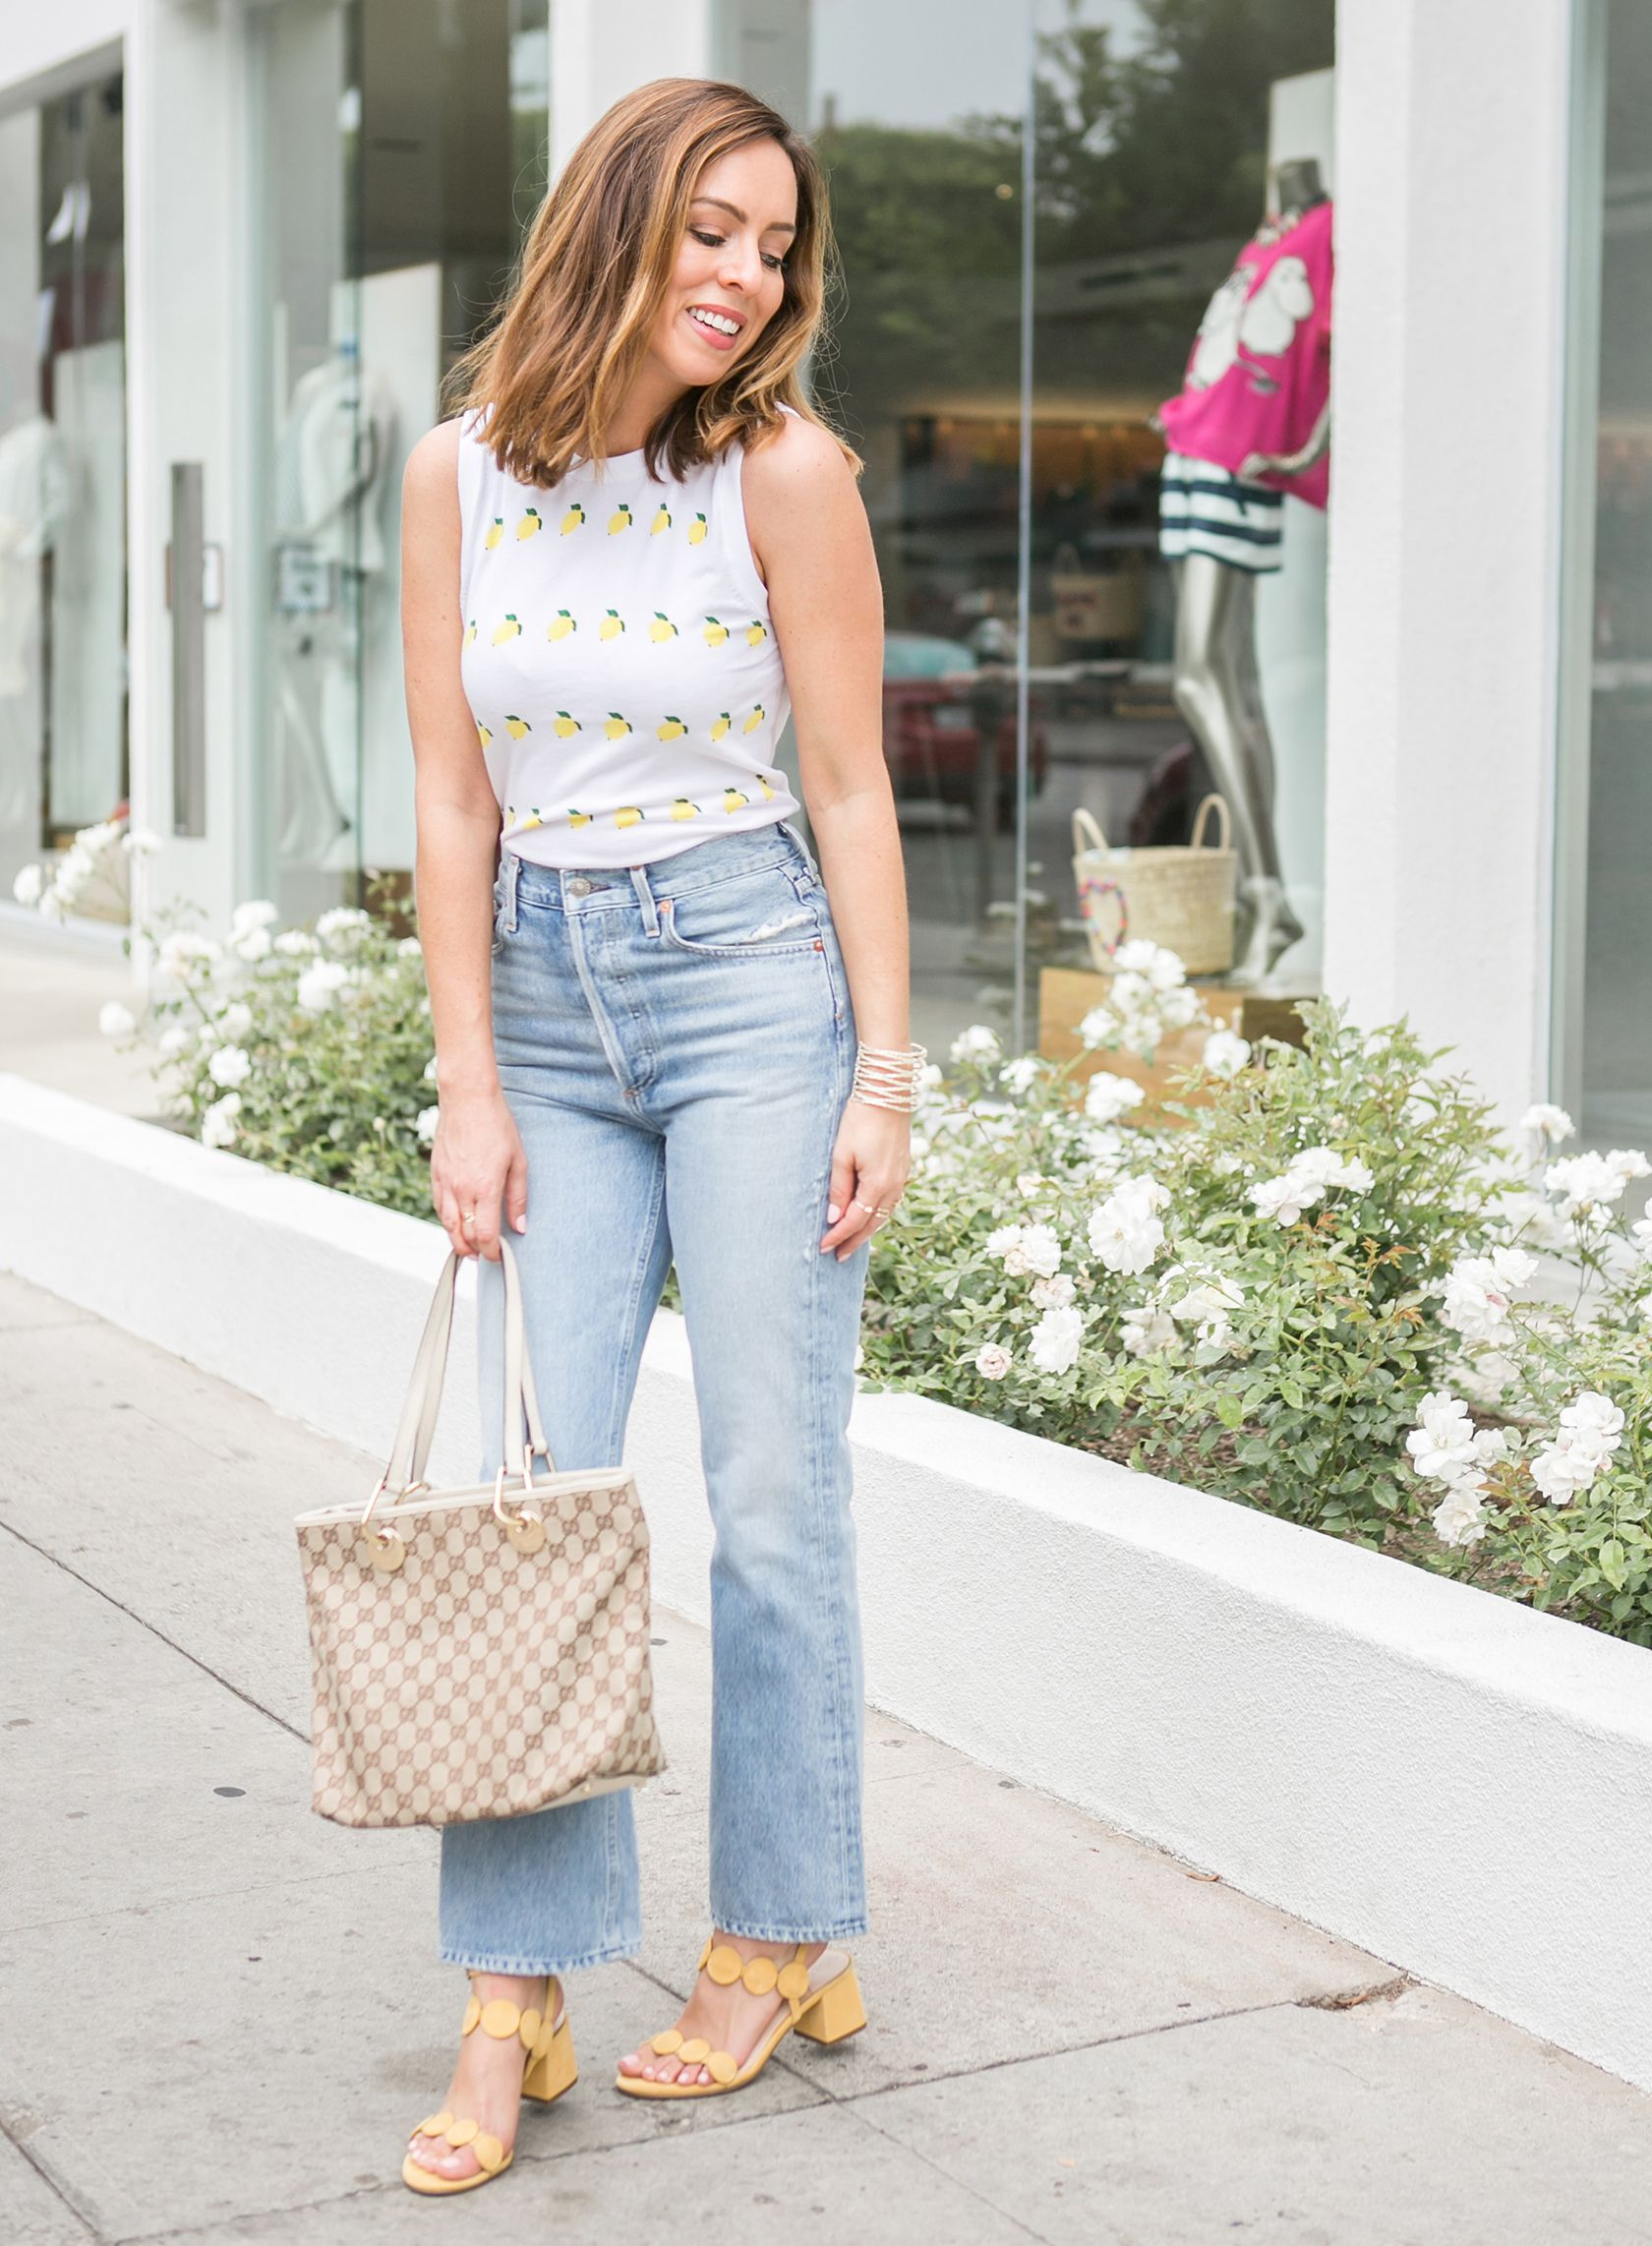 7b7ee031c02d1 Sydne Style shows what to wear with mom jeans for summer outfit ideas